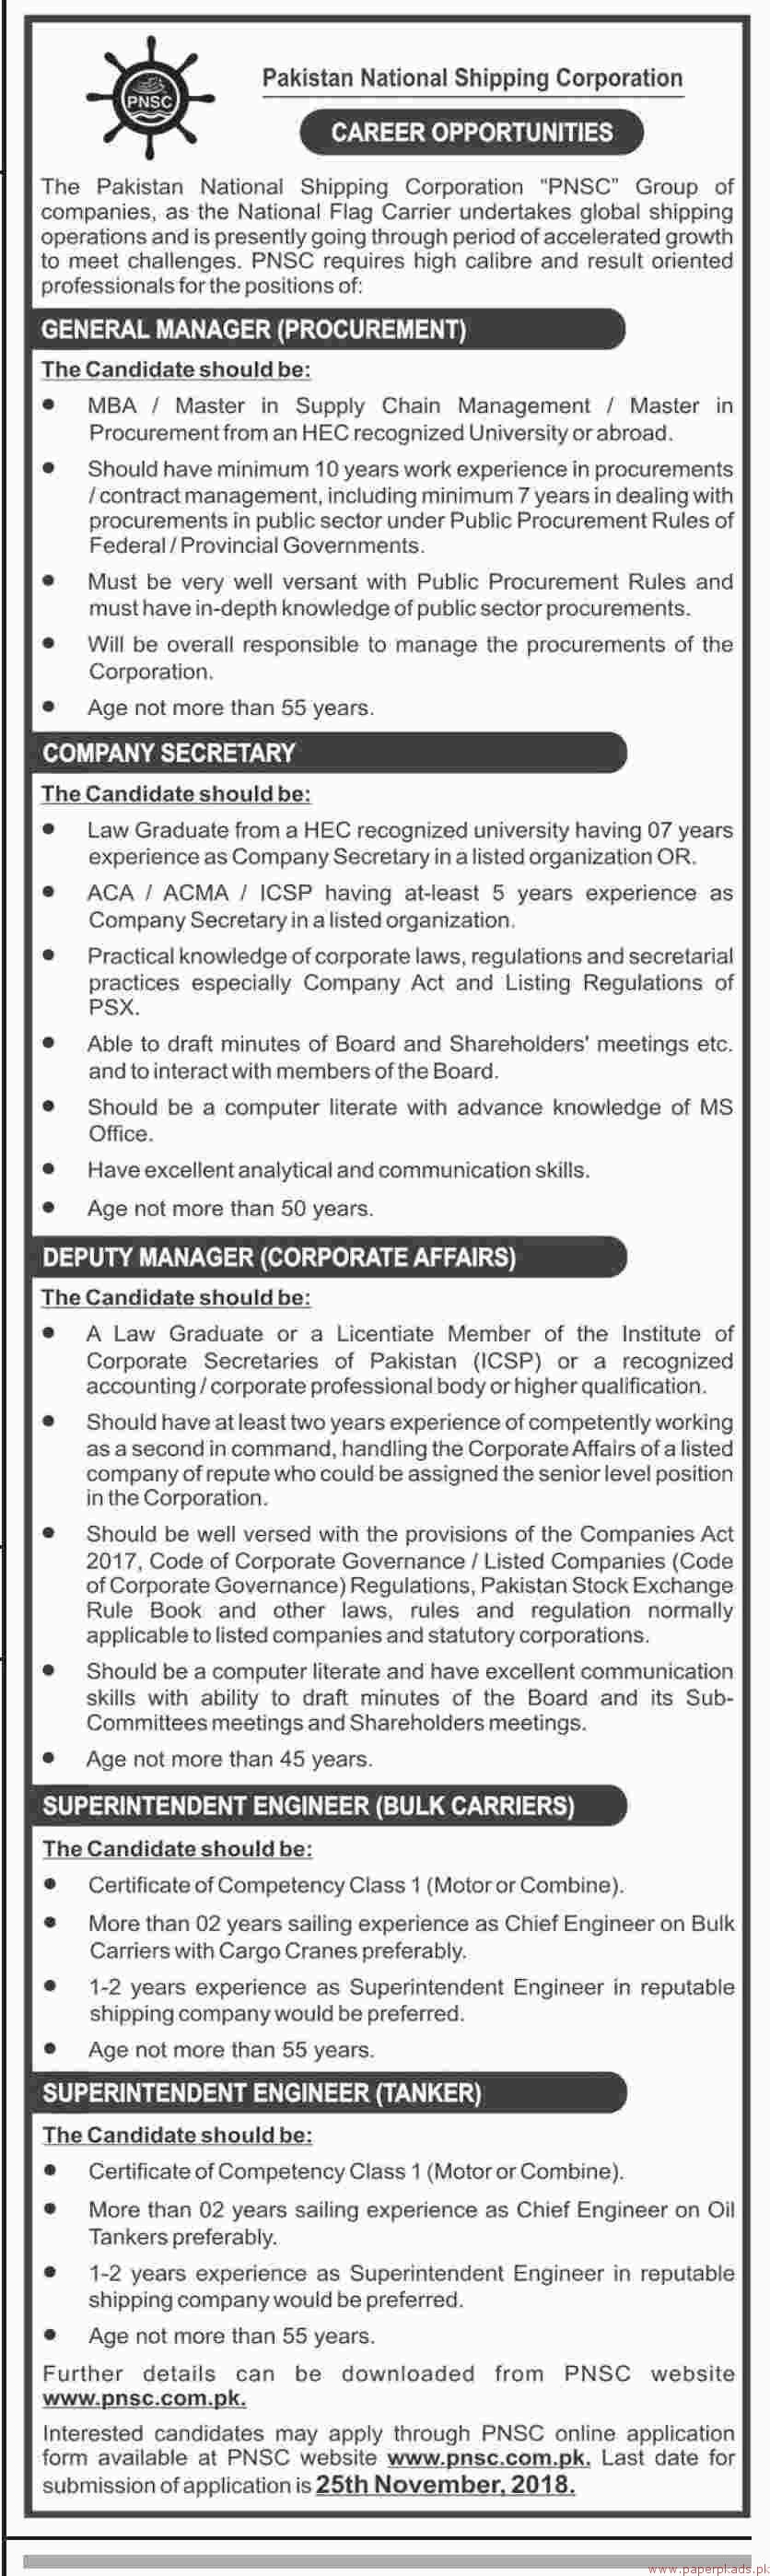 Pakistan National Shipping Corporation Jobs 2018 Latest